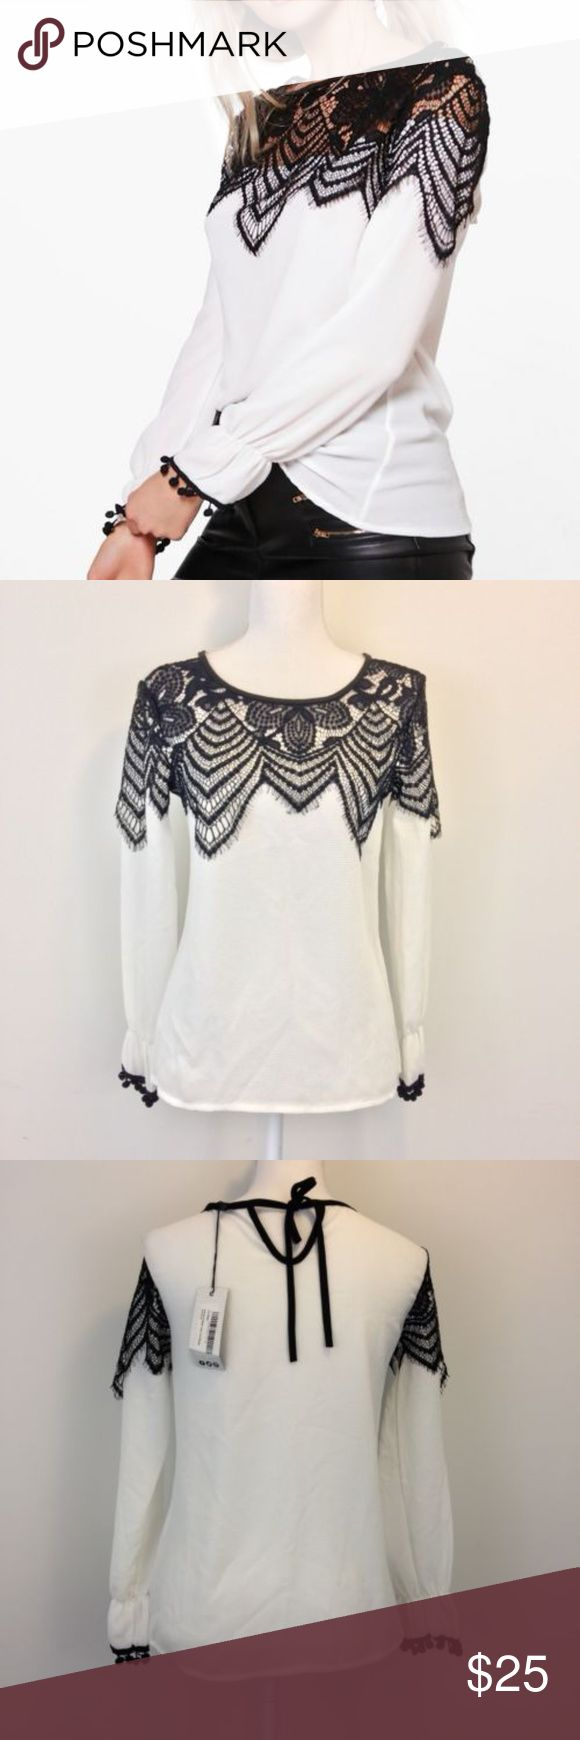 Boohoo Arianna Eyelash Lace Trim Blouse Size 6-8 Women'a Boohoo Arianna Eyelash Lace Trim Blouse Black and White  - US 6 UK 8 TAGS ARE NO LONGER ATTACHED TO THIS ITEM*****   Measurements: Boohoo Tops Blouses